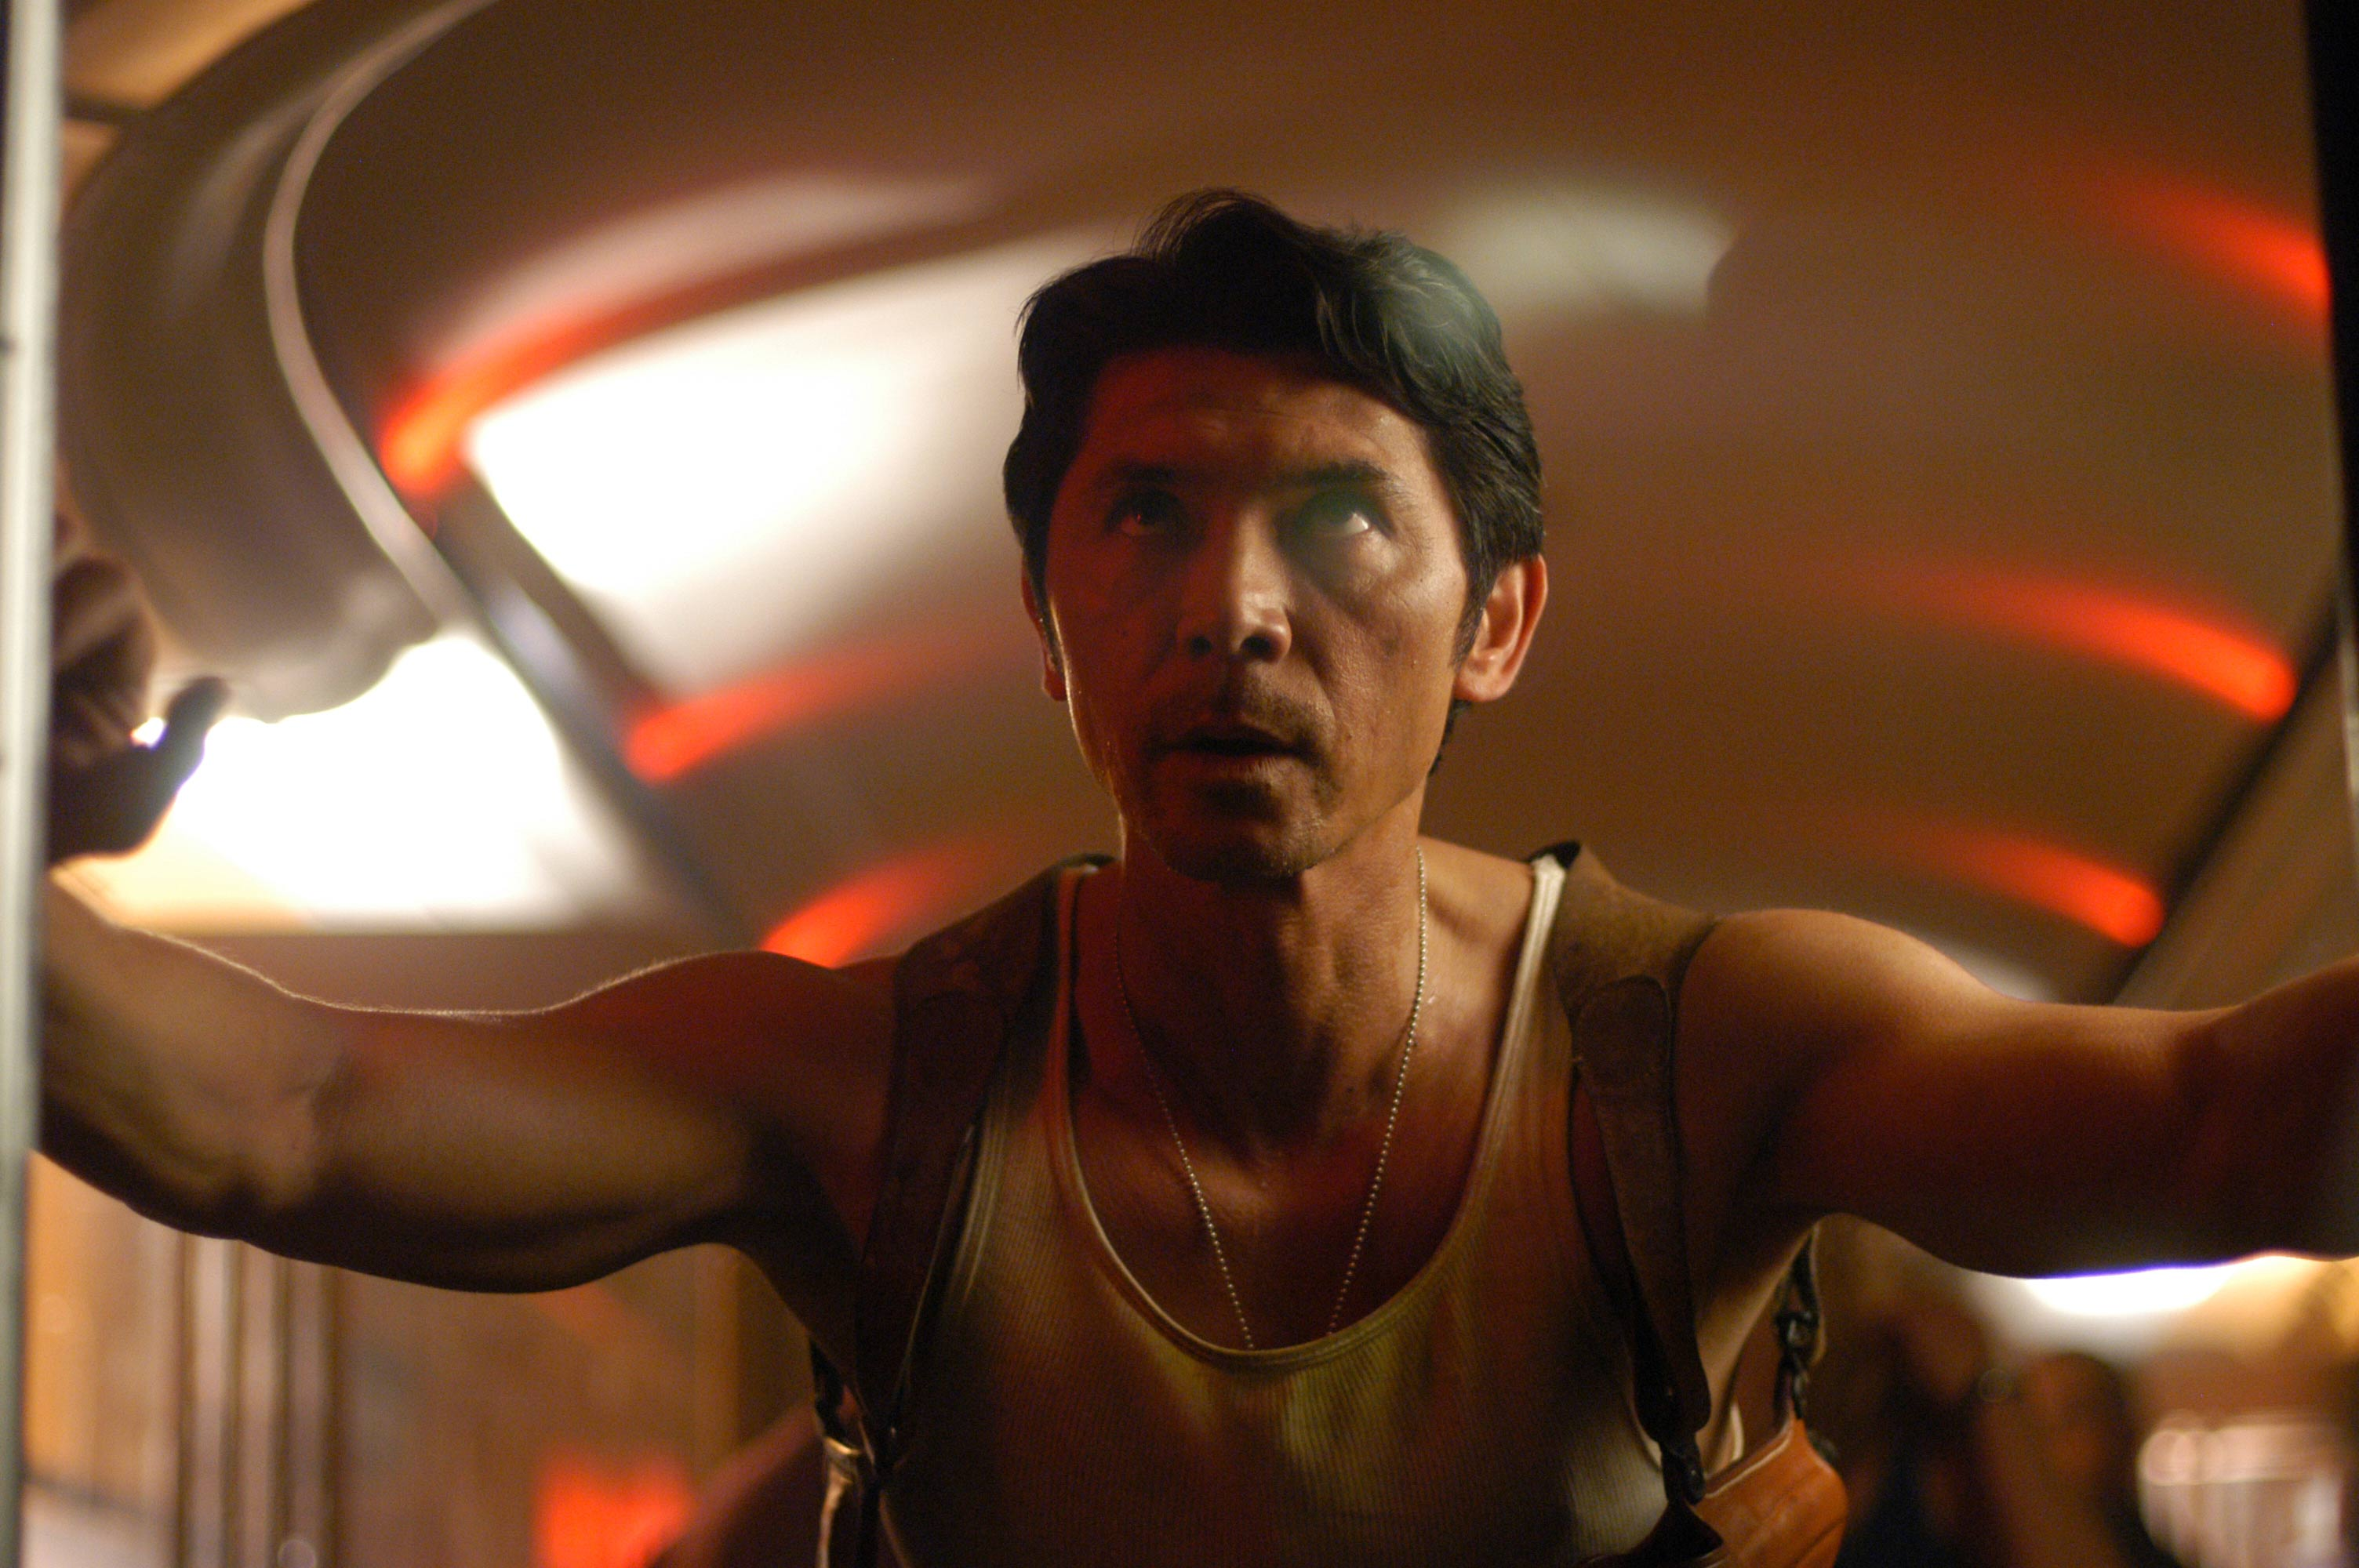 State trooper Lou Diamond Phillips goes into action on board the train in Alien Express (2005)